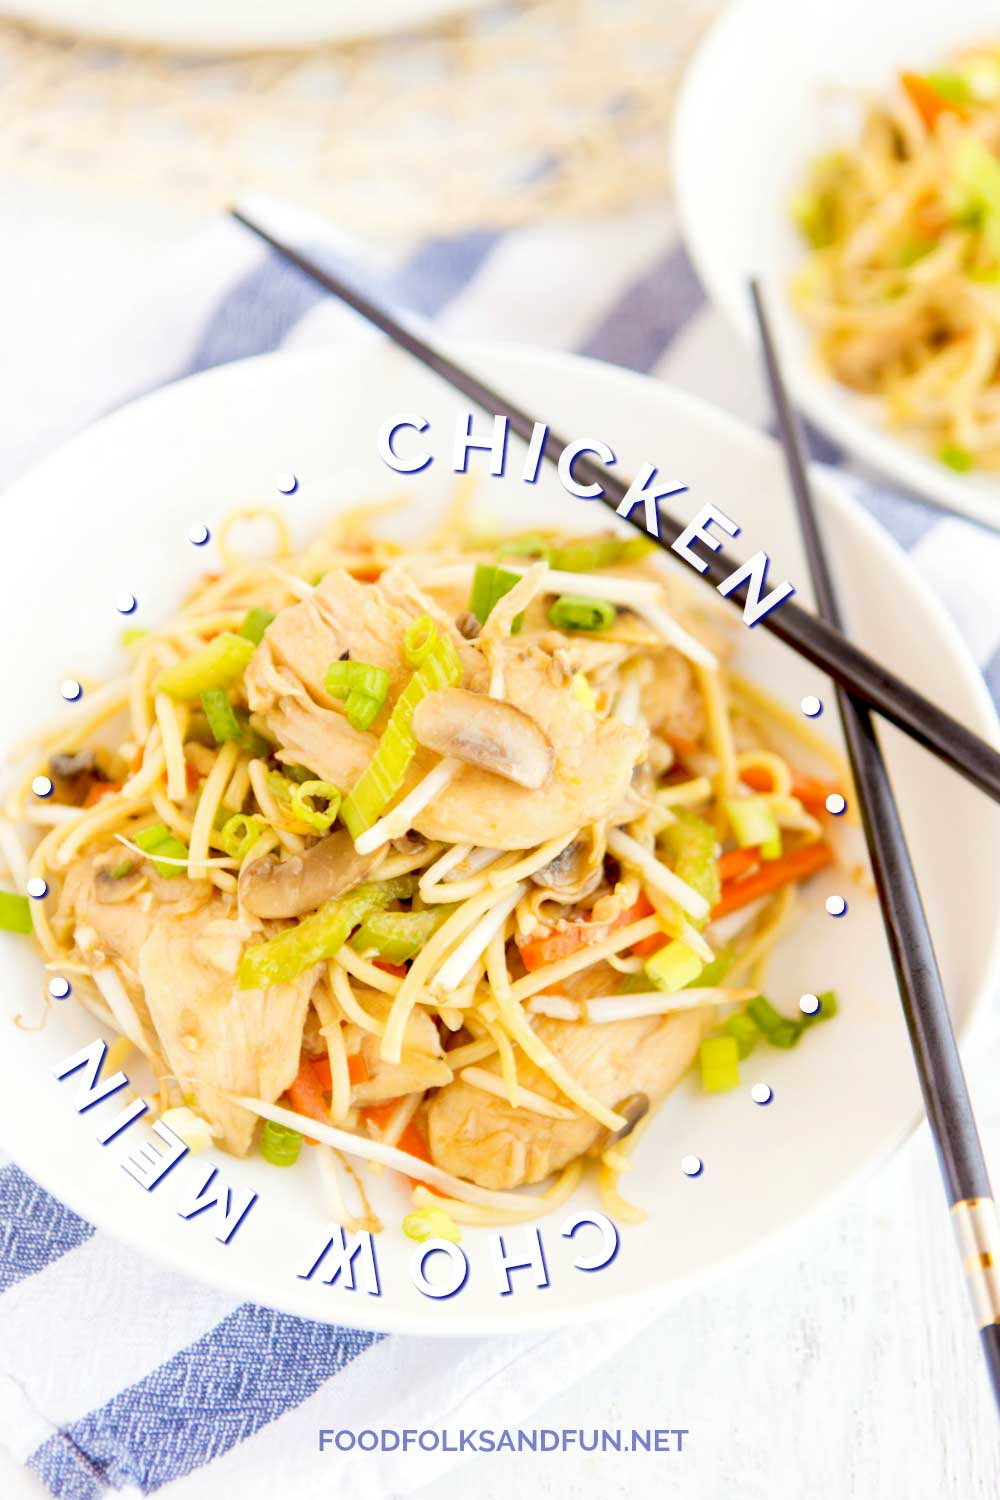 ThisChicken Chow Mein is an easy, at-home recipe that's better than any Chinese takeout! It's simple and so crave-worthy!